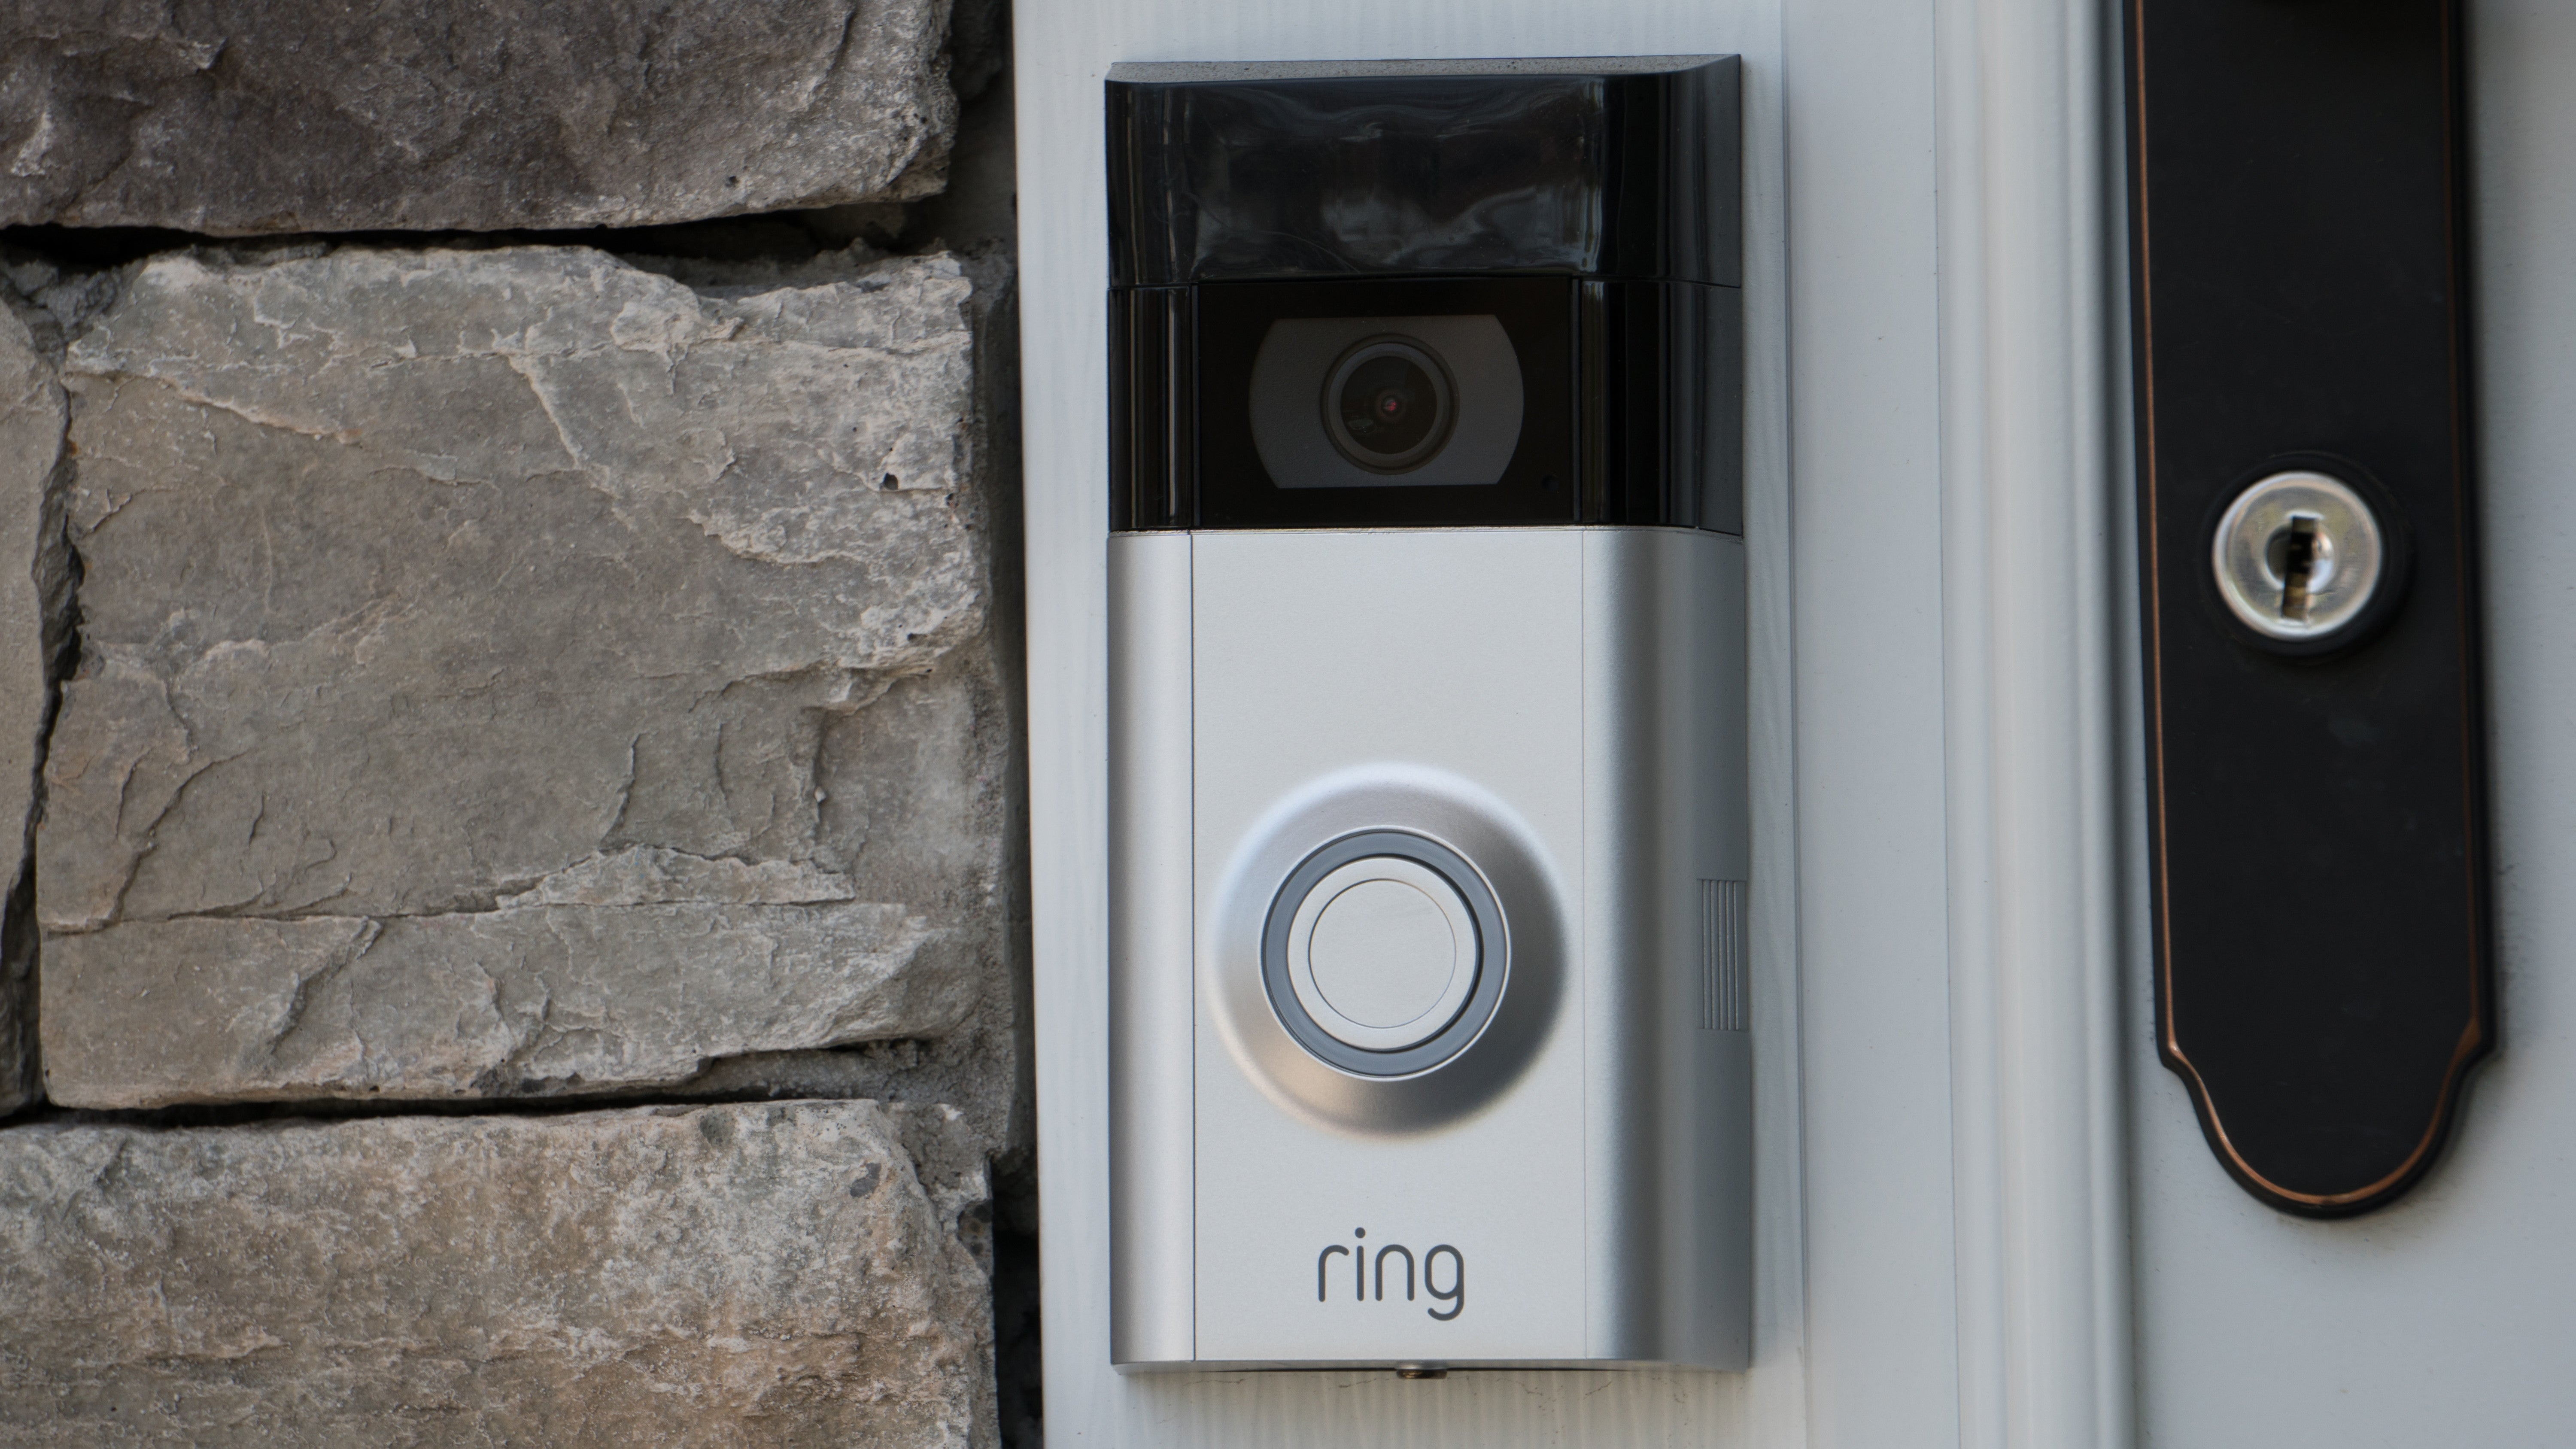 Change Your Ring Account Password Right Now